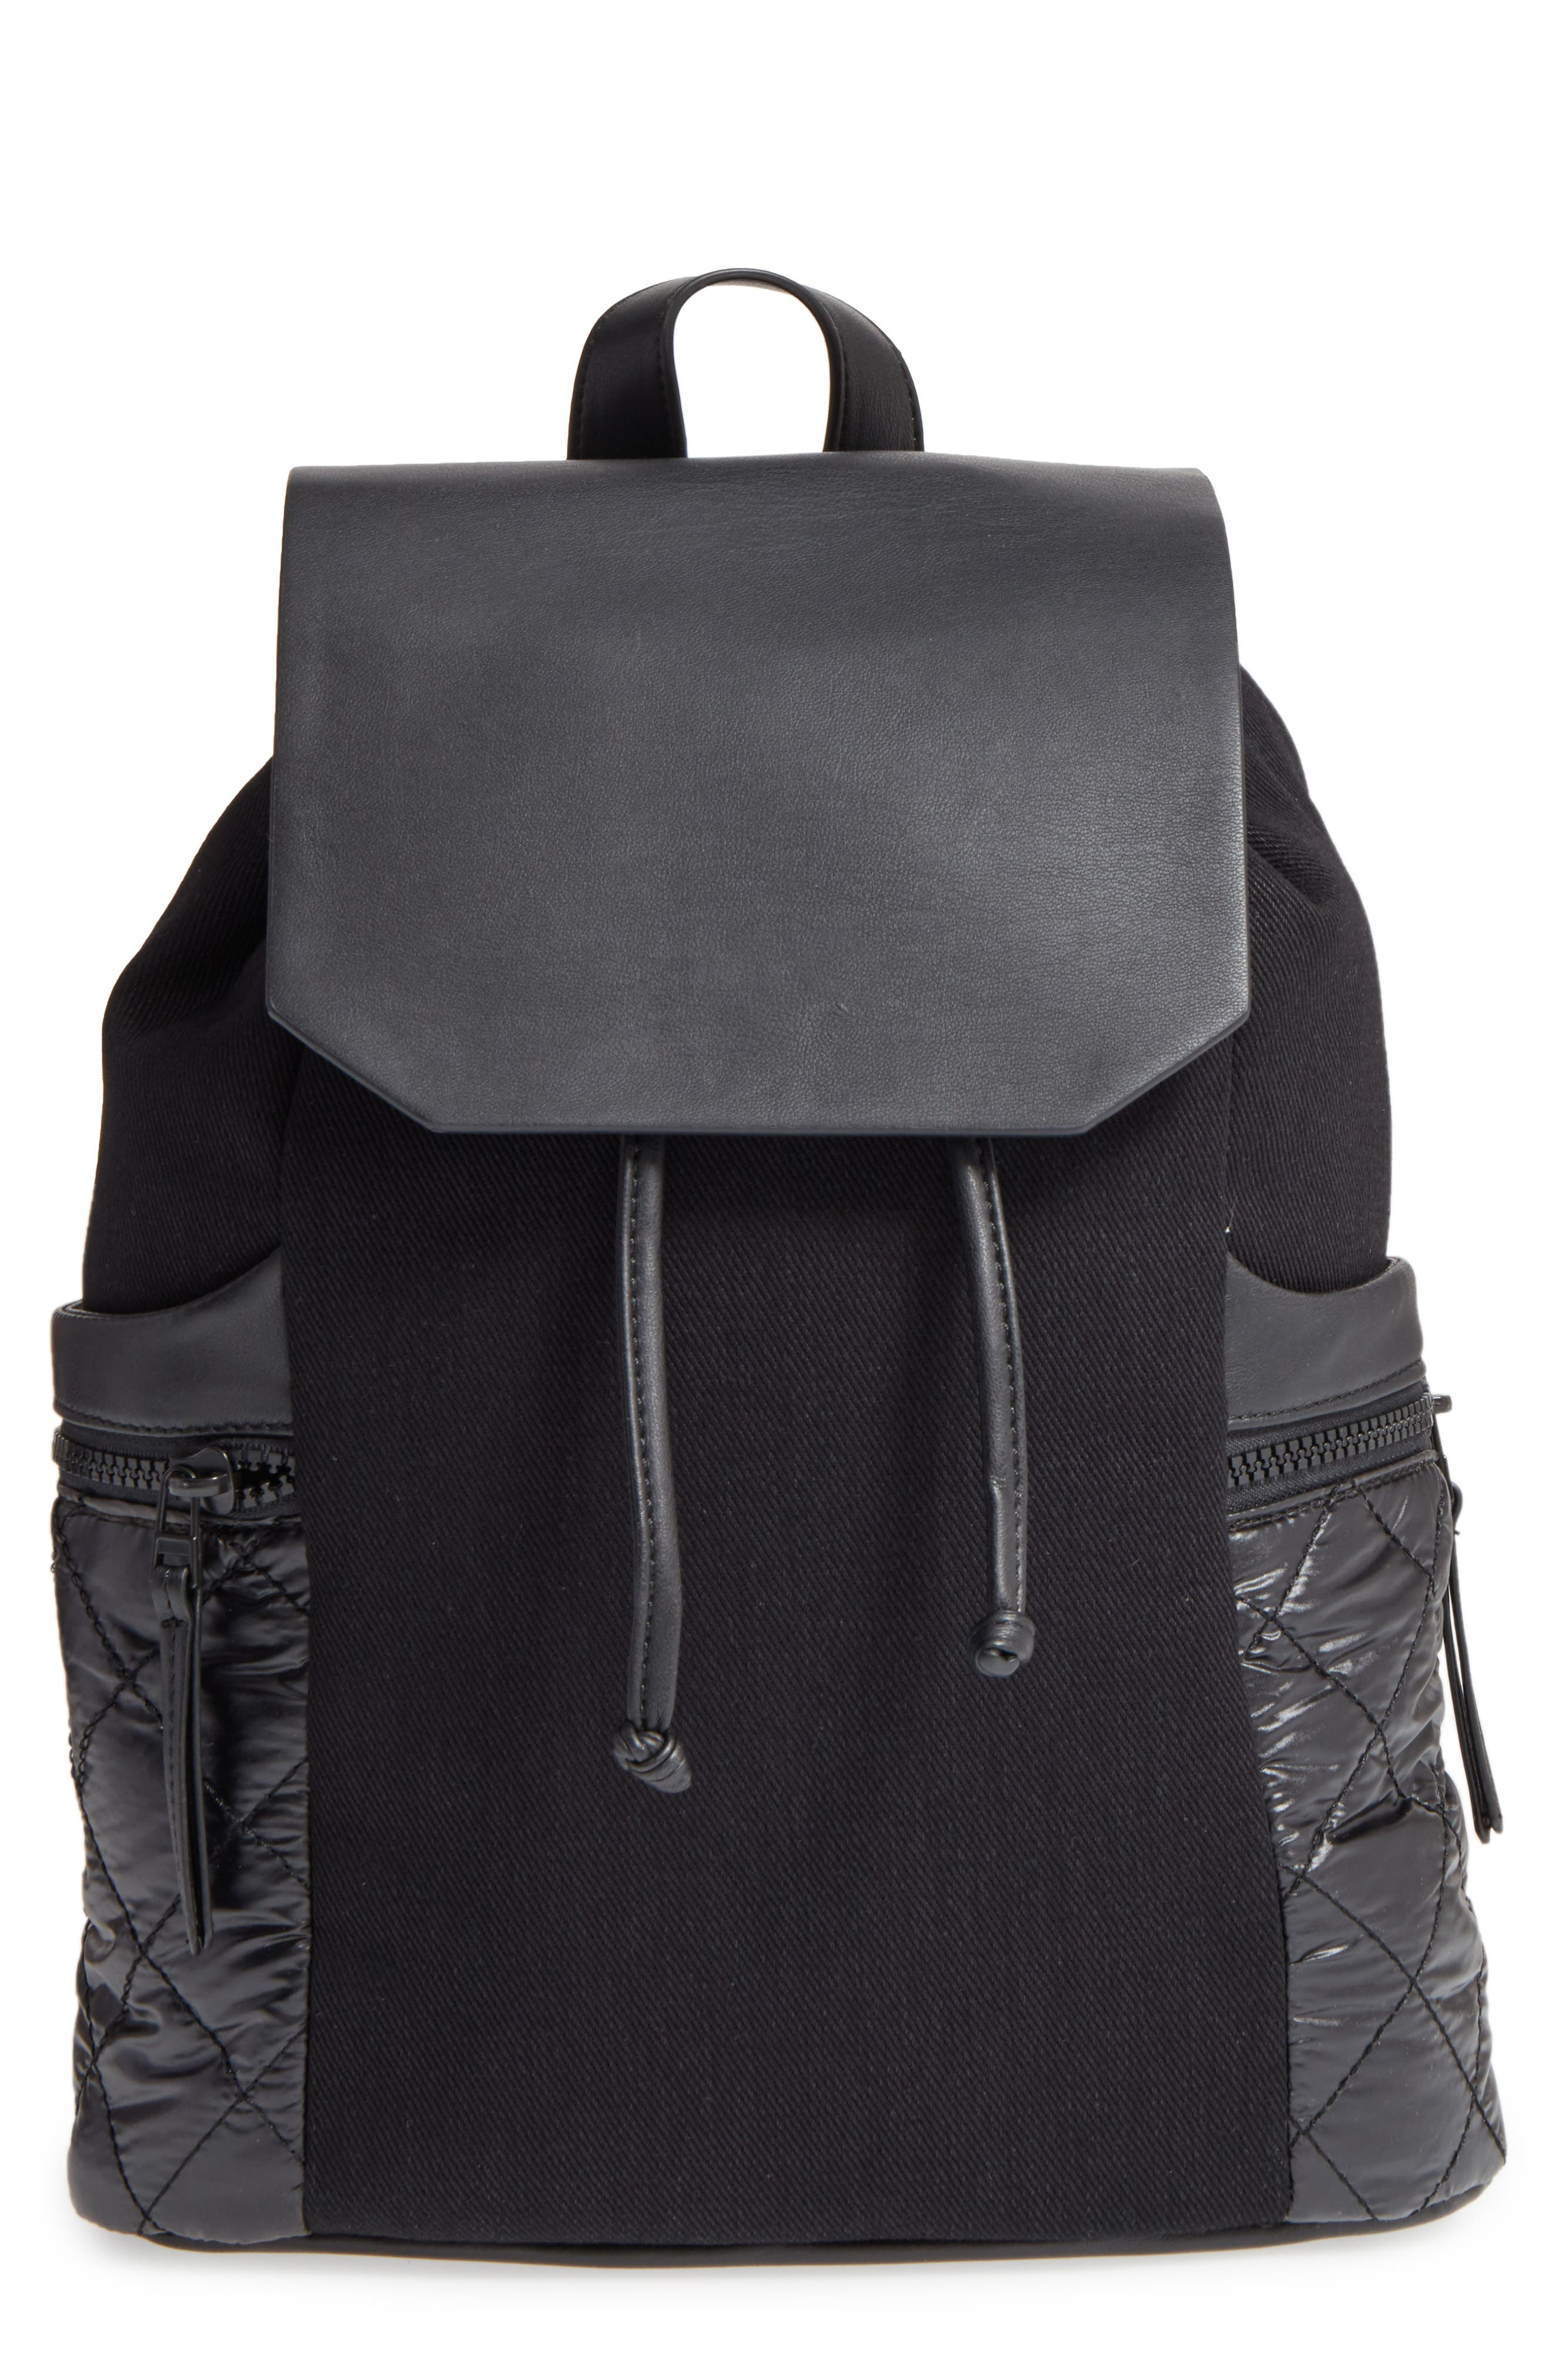 Phase 3 Denim & Faux Leather Backpack